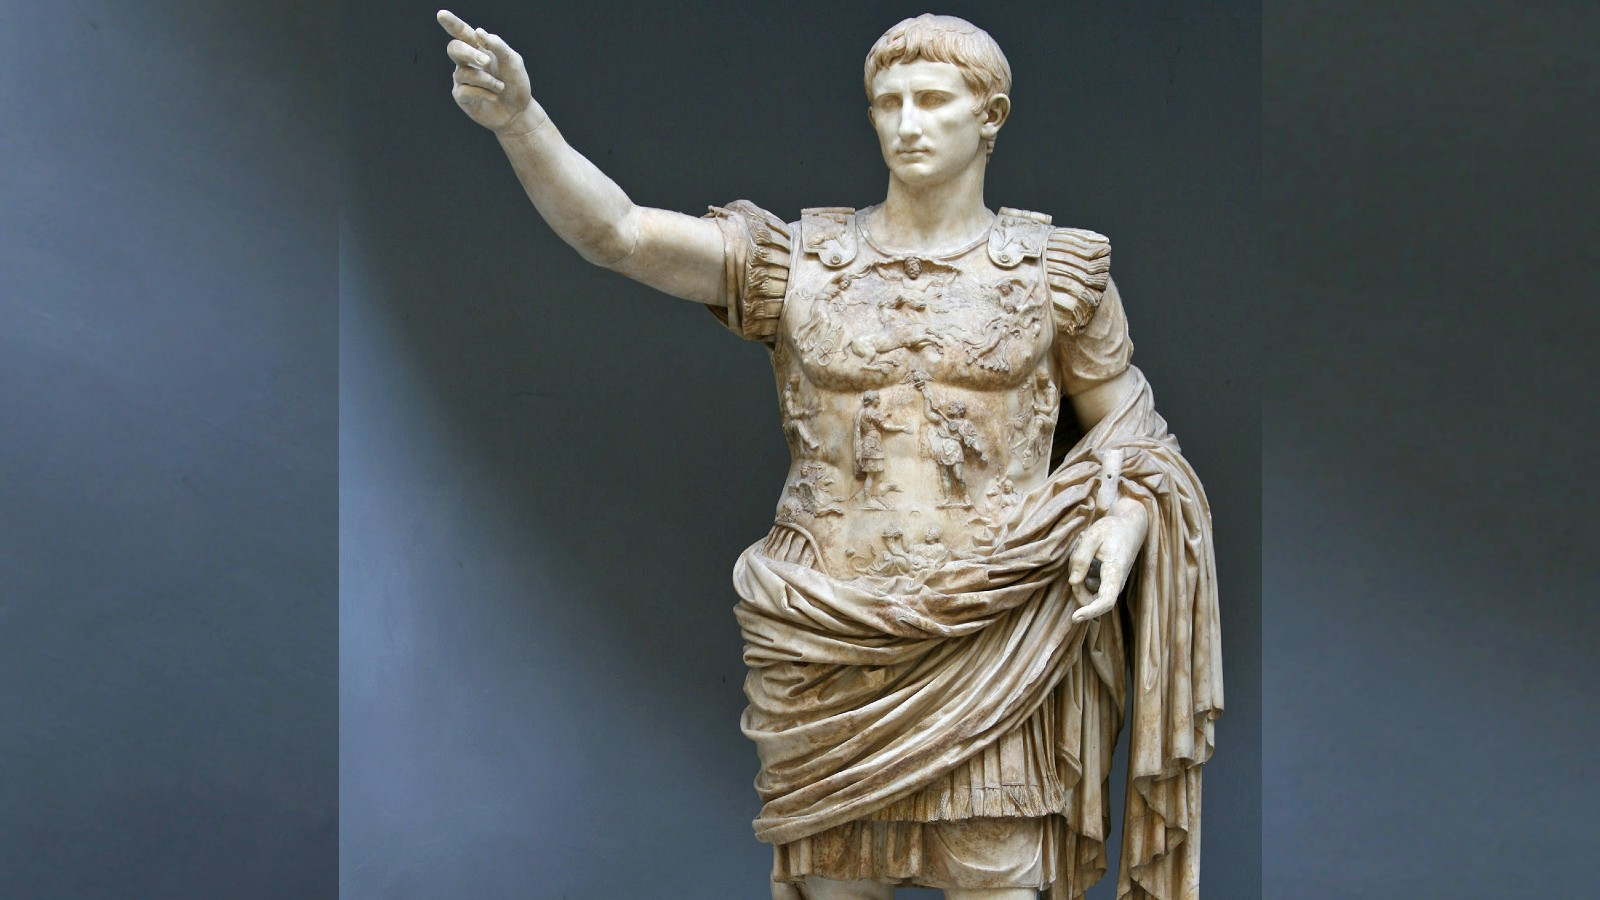 The Roman Empire: Rulers, expansion and fall